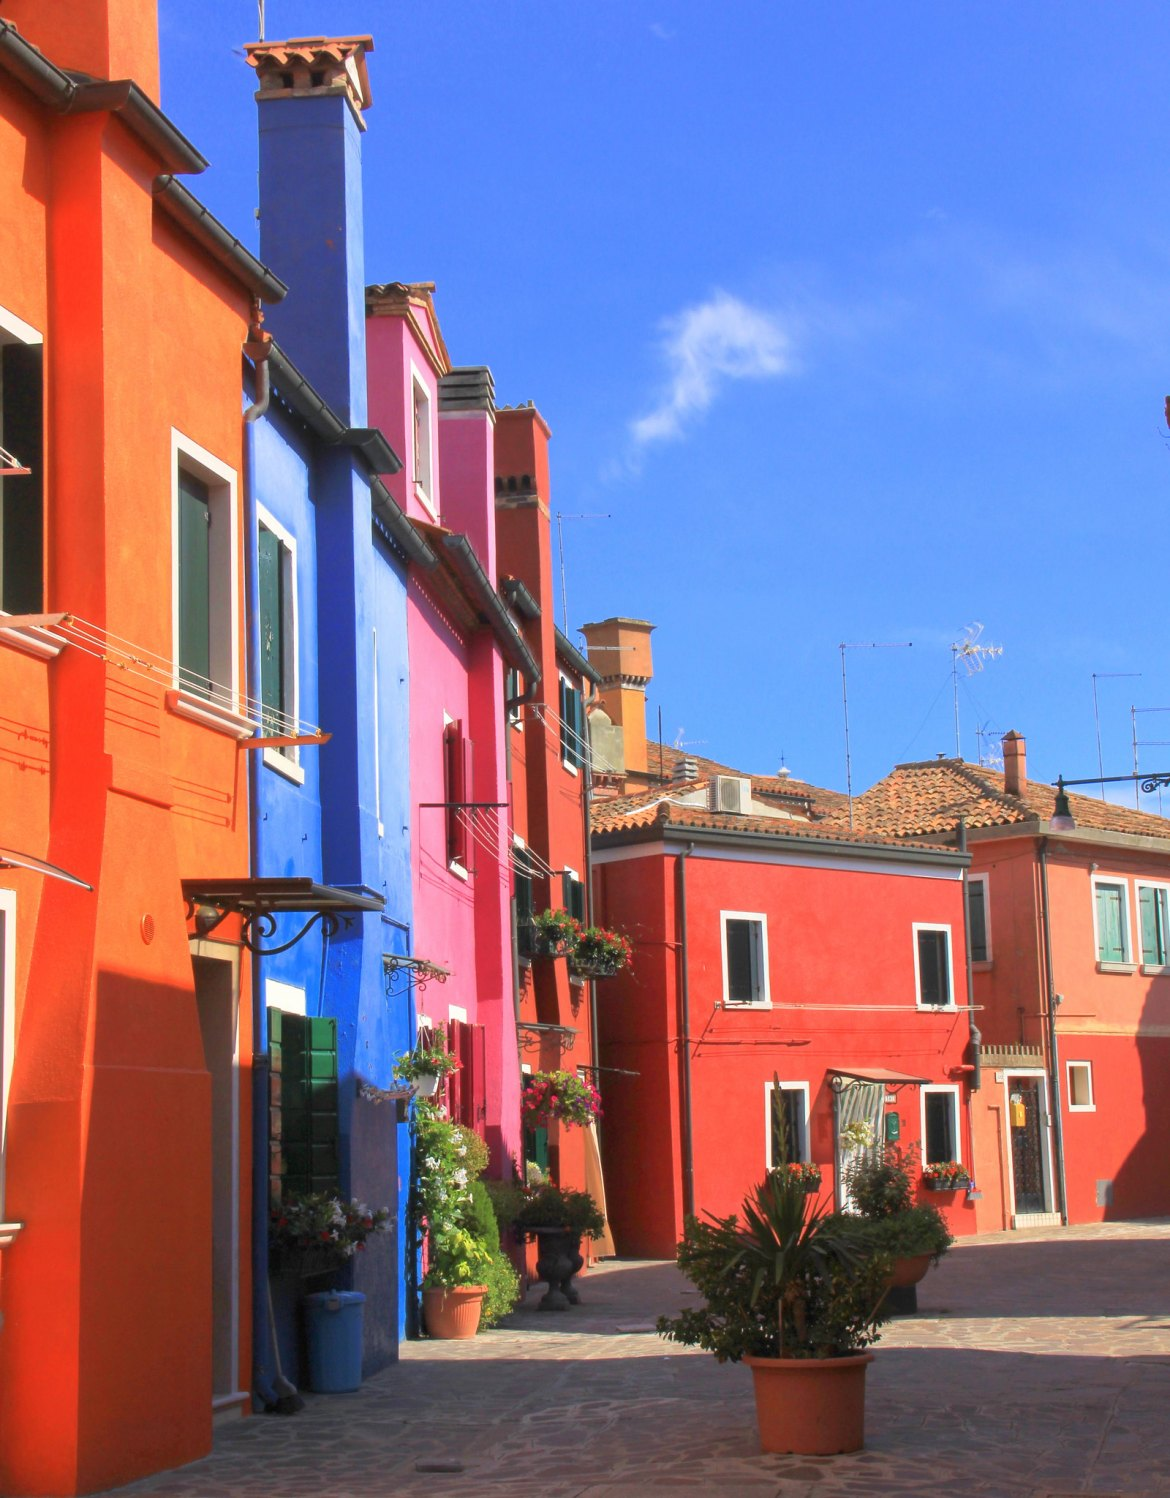 A colourful slice of Burano island in Italy